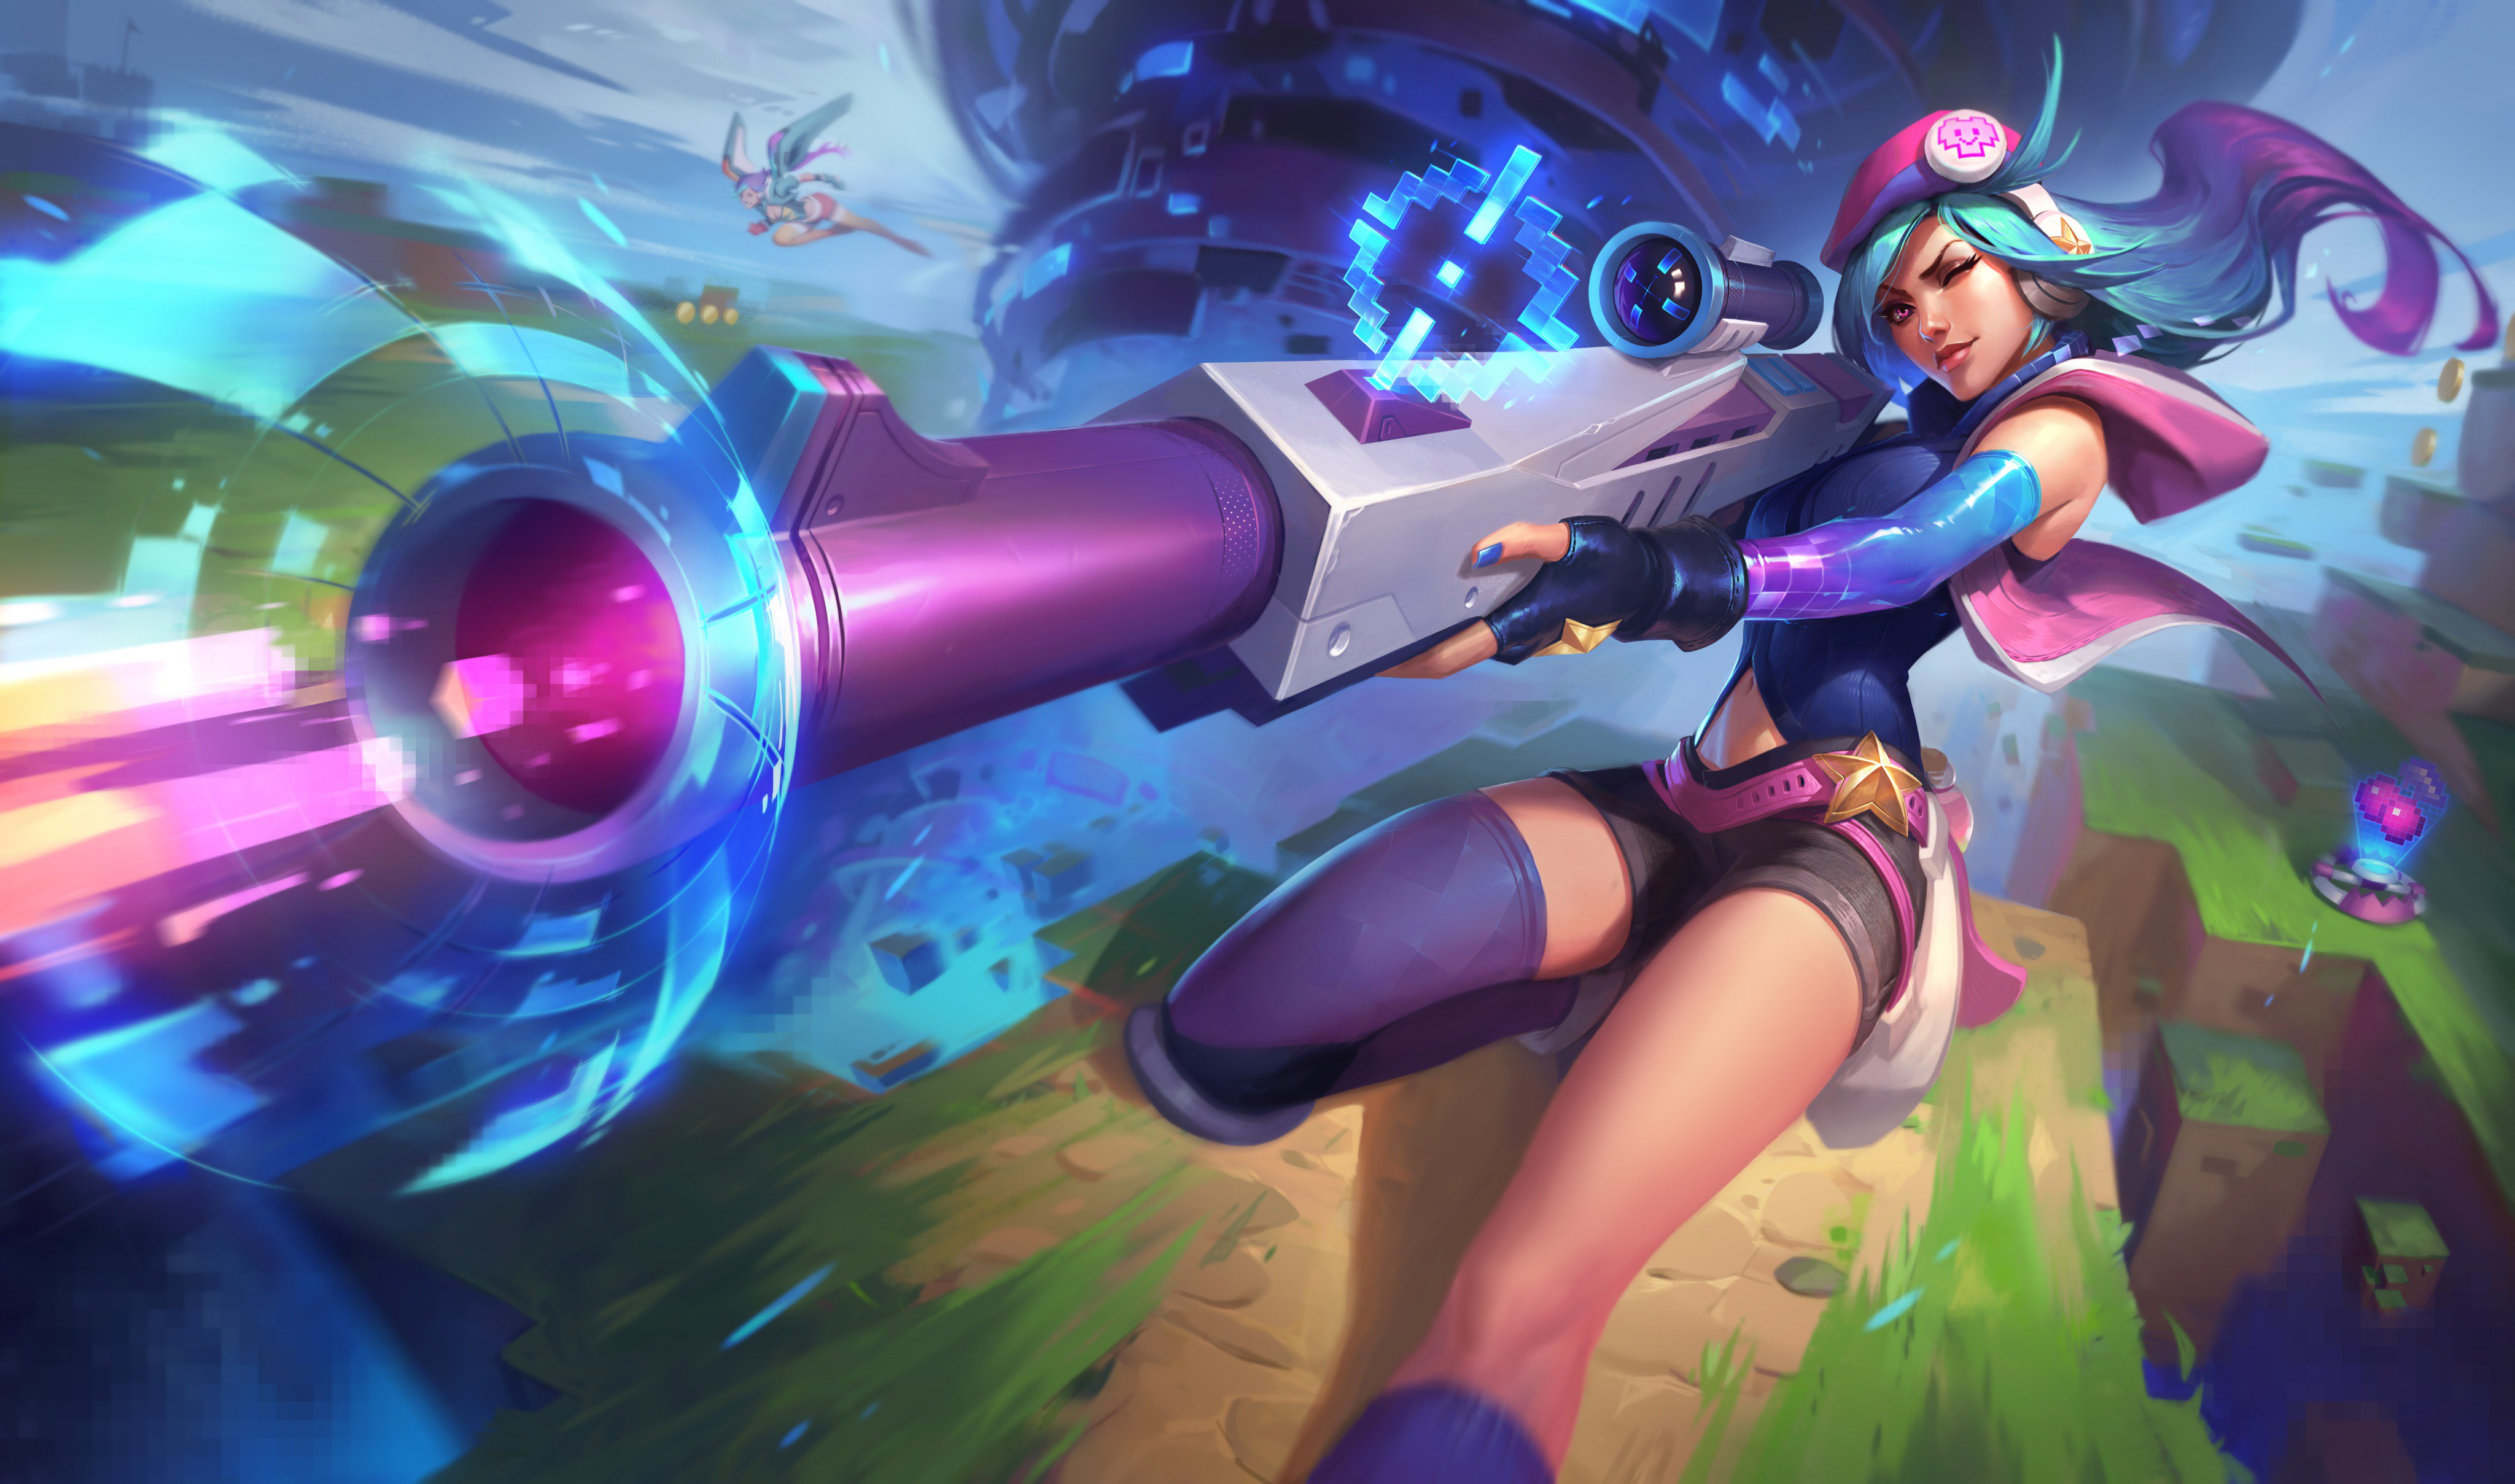 league of legends caitlyn video game girls game boy advance caitlyn (league of legends) video game characters arcade machine arcade  arcade skins